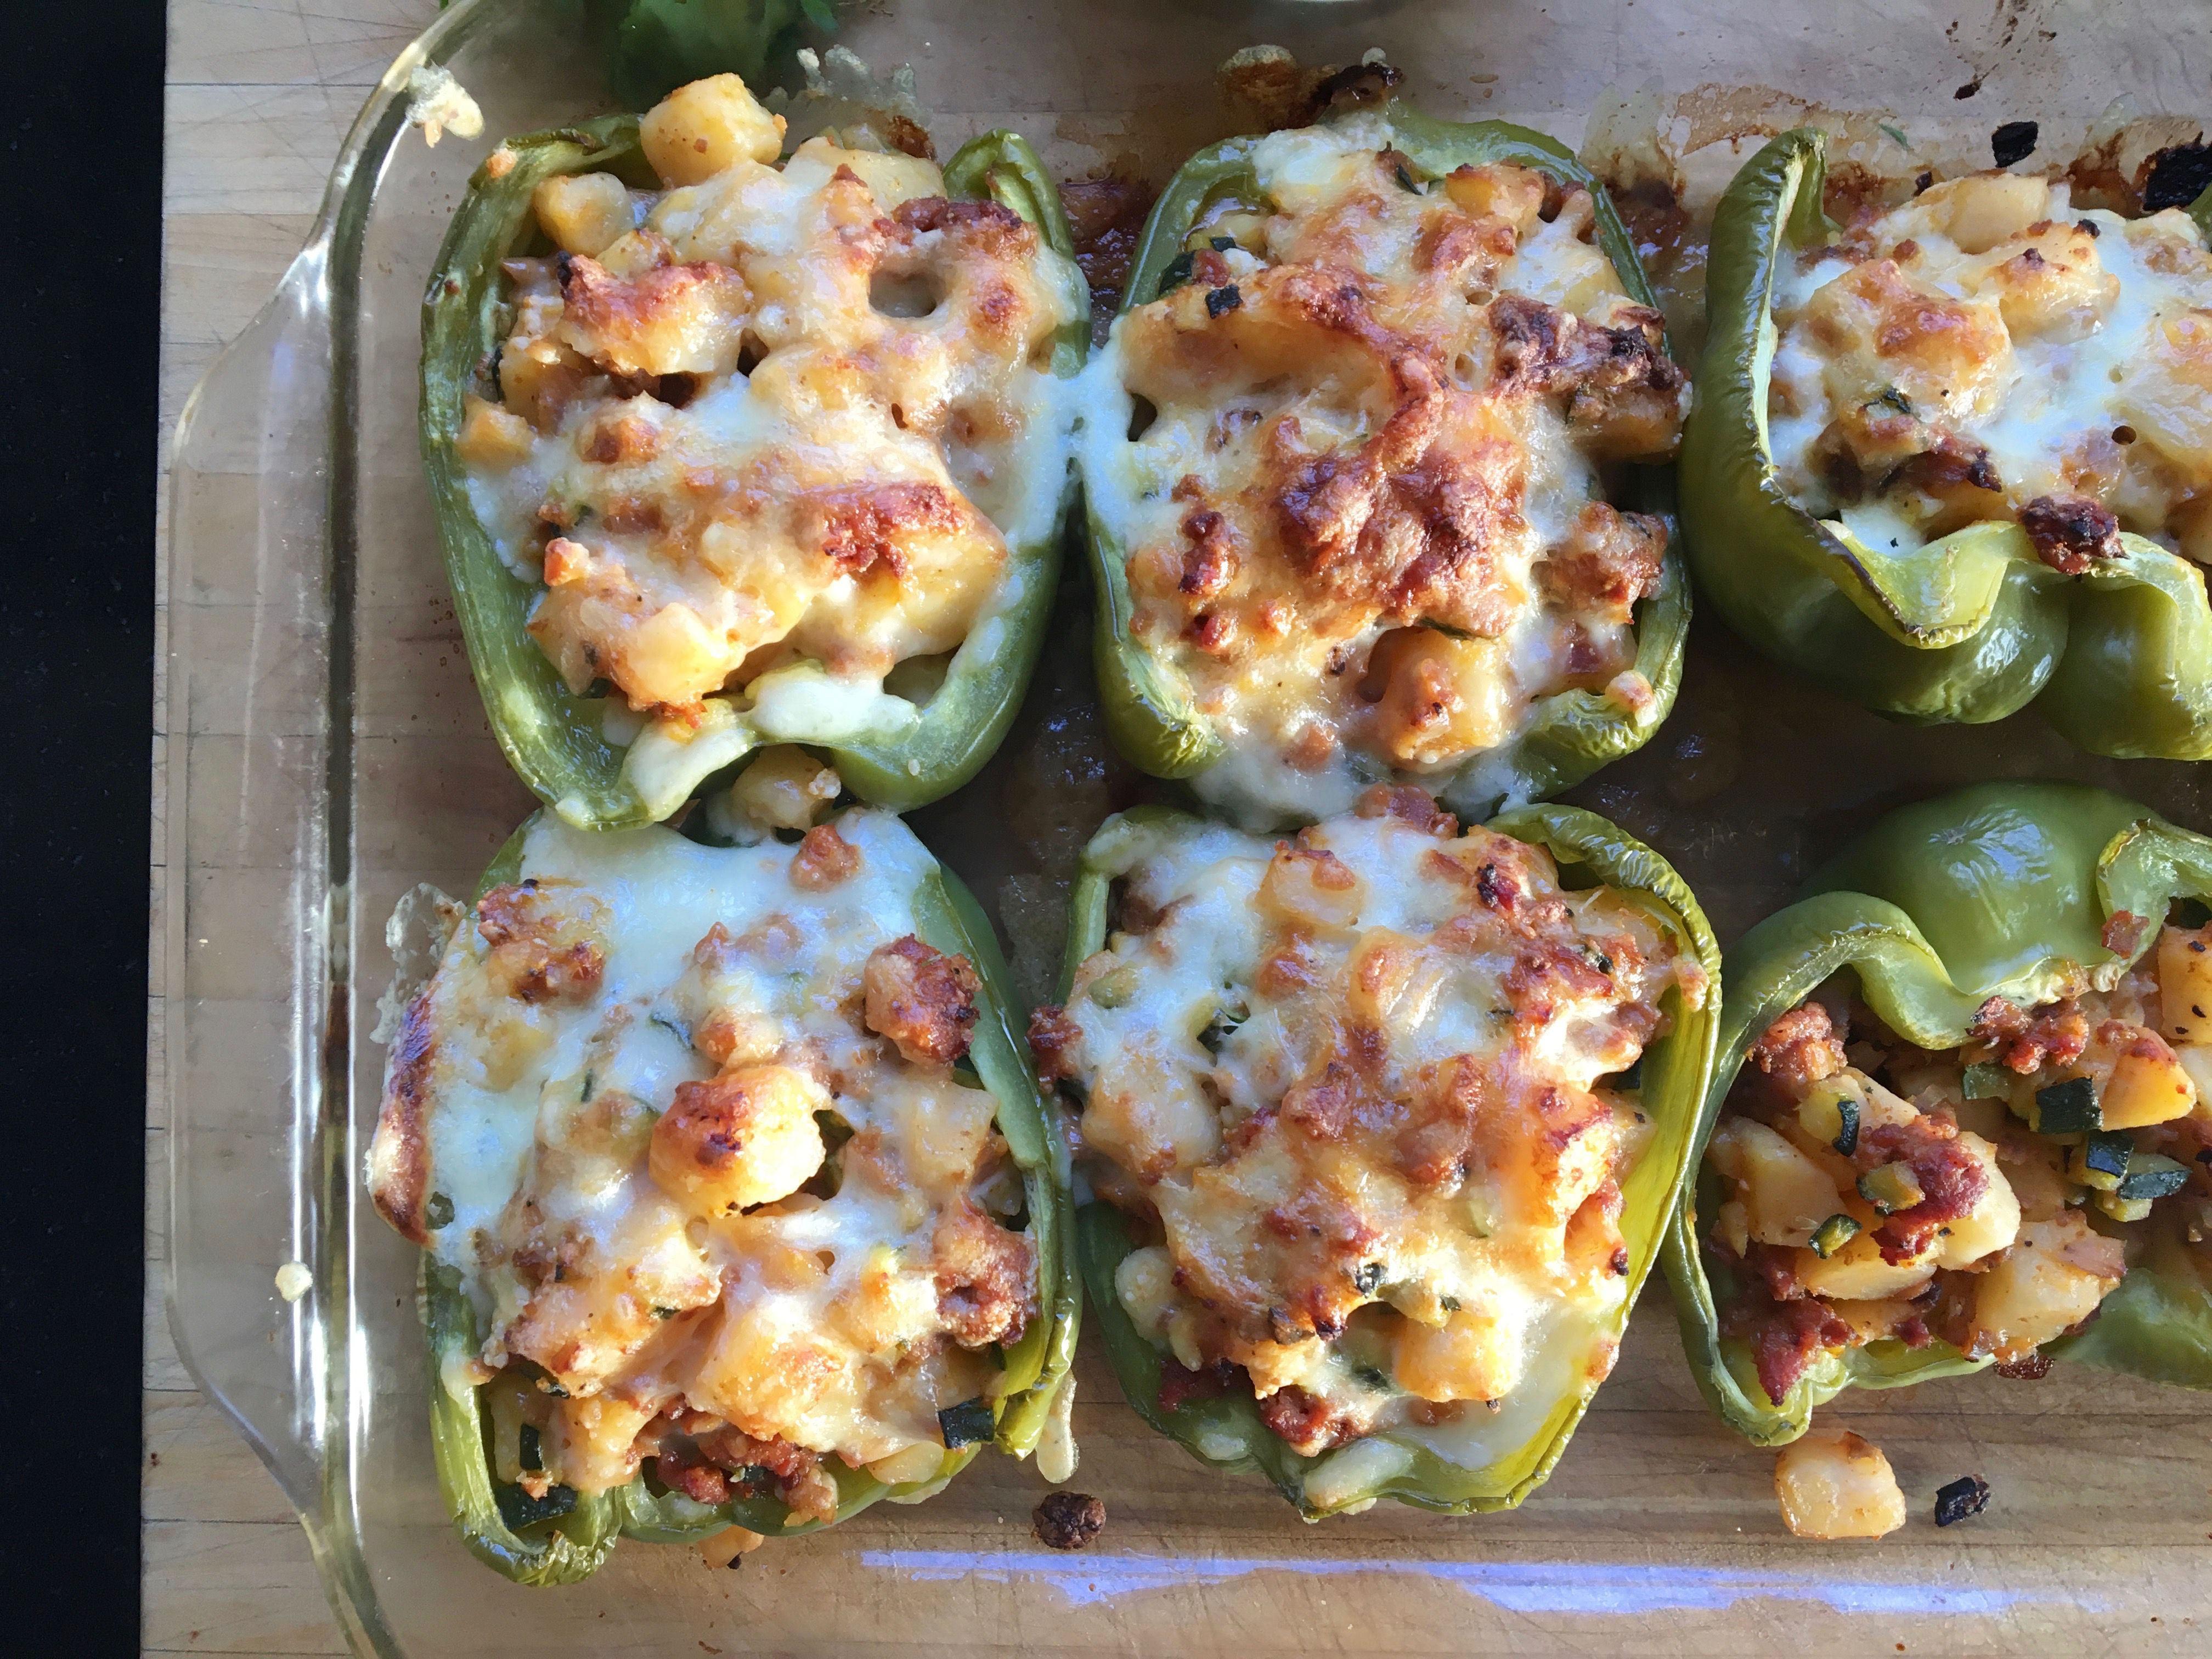 Chile Relleno Stuffed Peppers